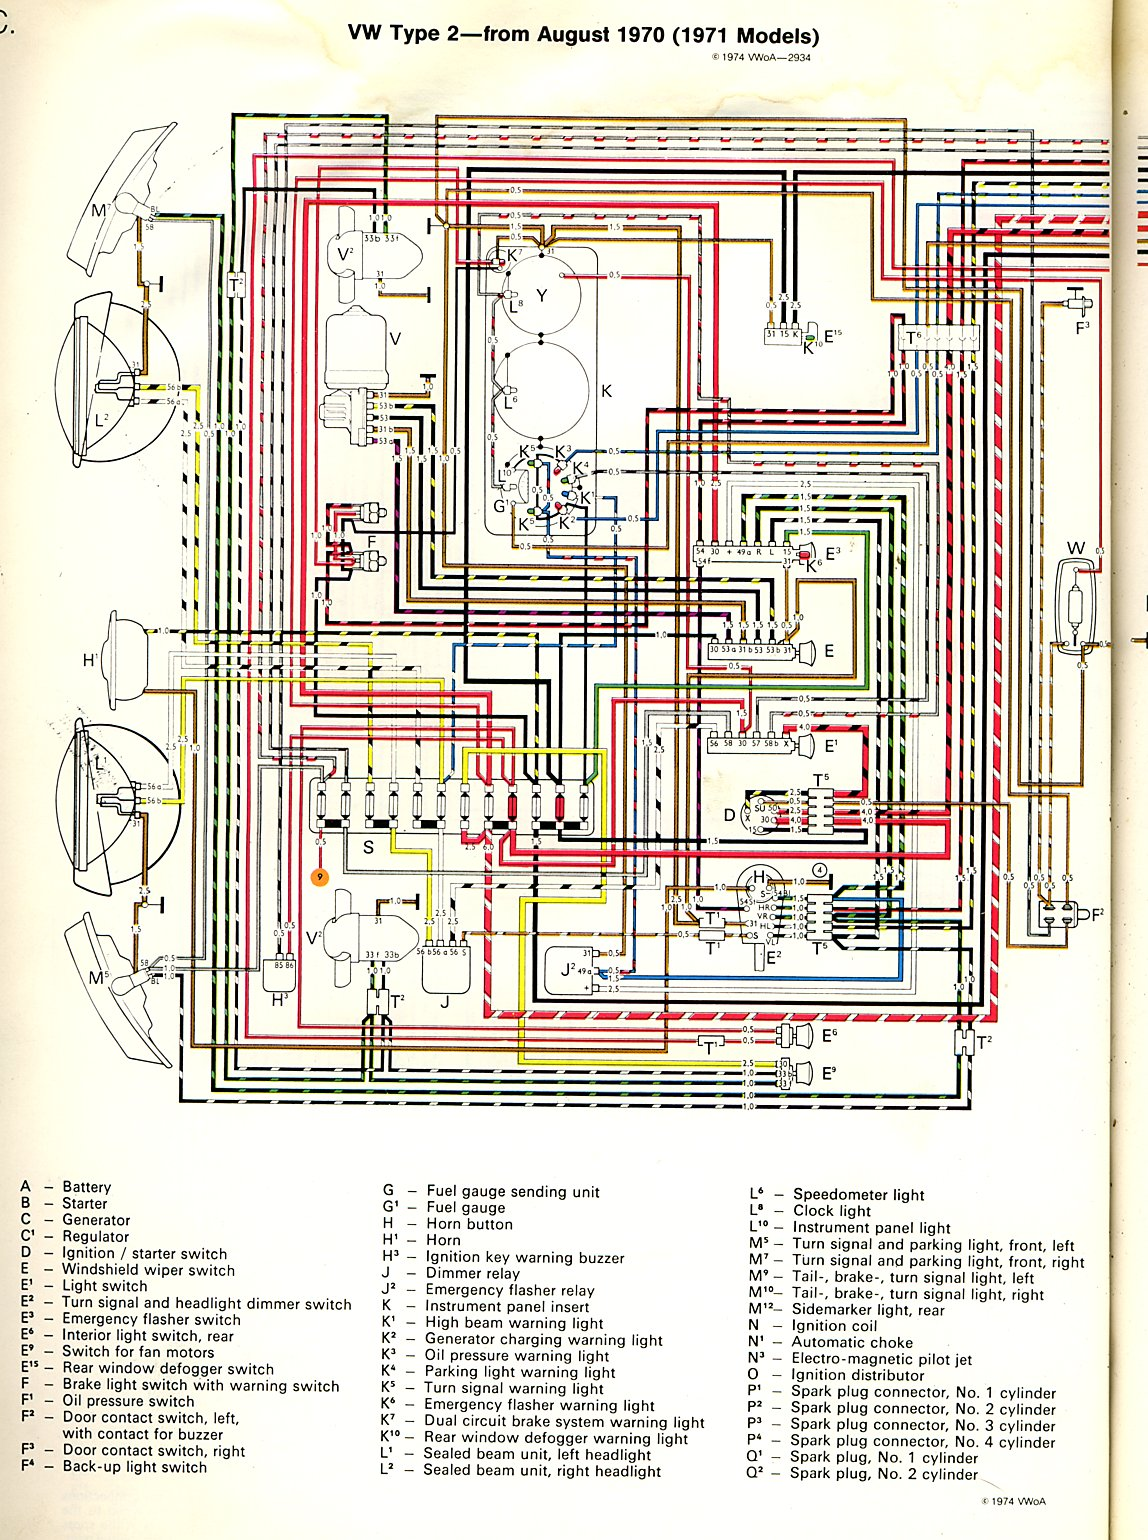 Type 2 Wiring Diagrams Diagram Additionally 3 Wire Condenser Fan Motor